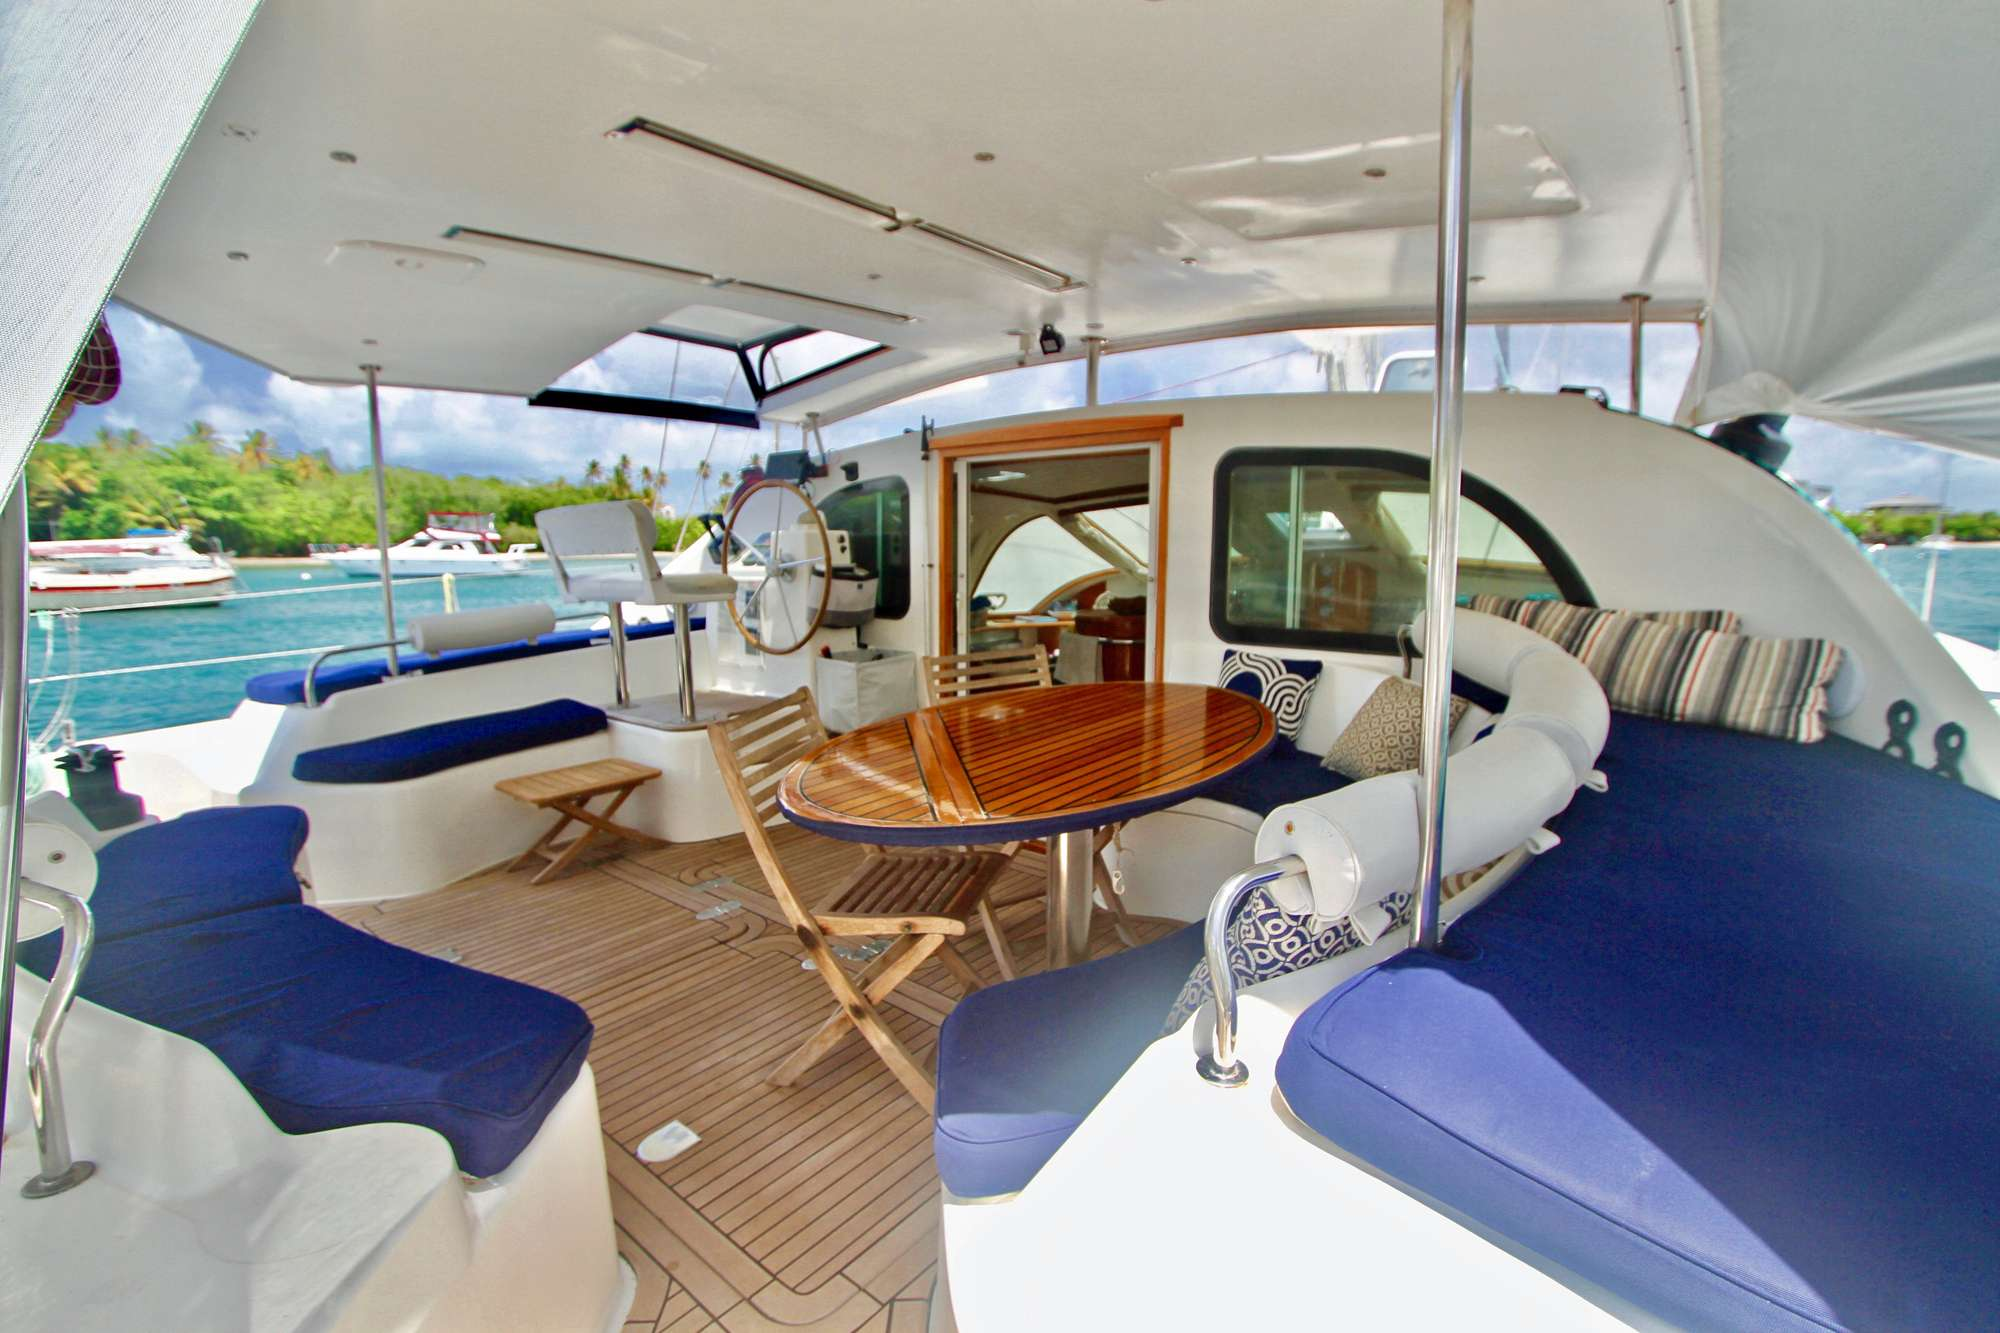 Aft Deck and Cockpit